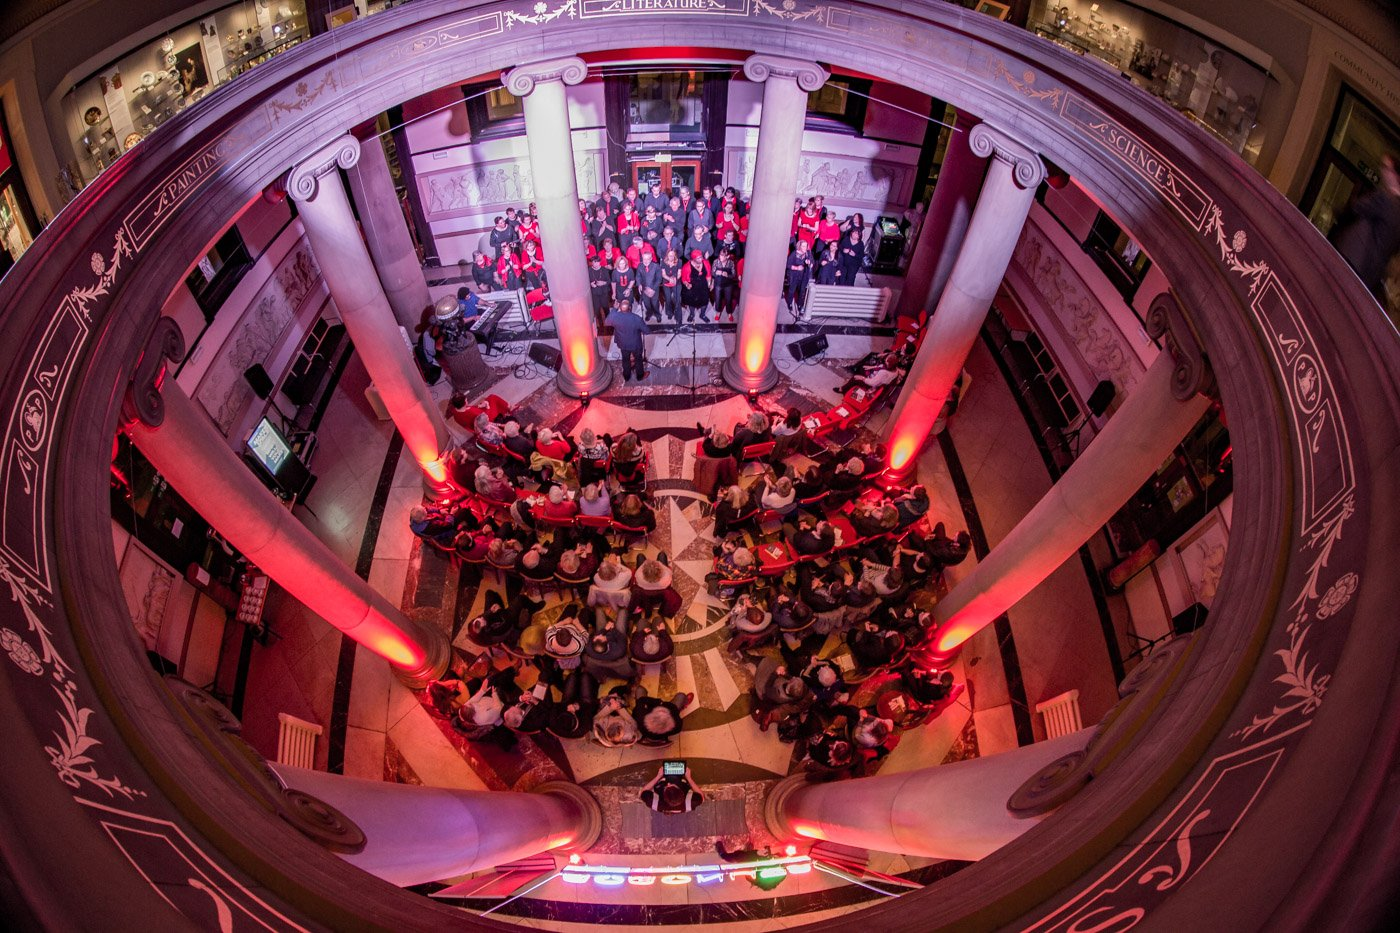 The Harris rotunda filled with people at an event